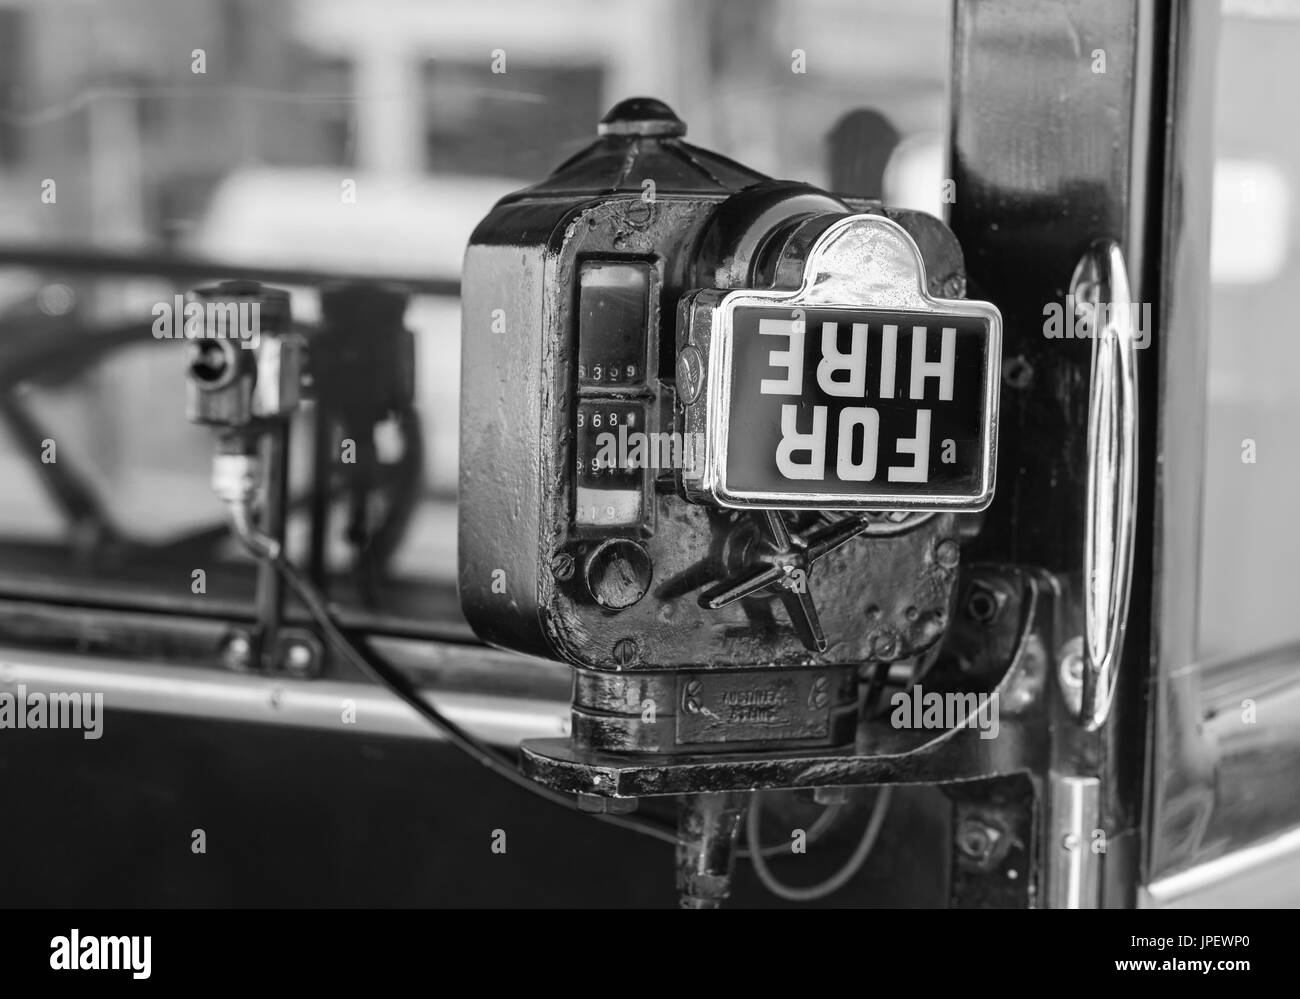 Argo Taximeter & For Hire sign from the 1930s fitted to a vintage London taxicab. Taxi fare meter fitted to vantage Austin Six taxi in the UK. B&W. - Stock Image